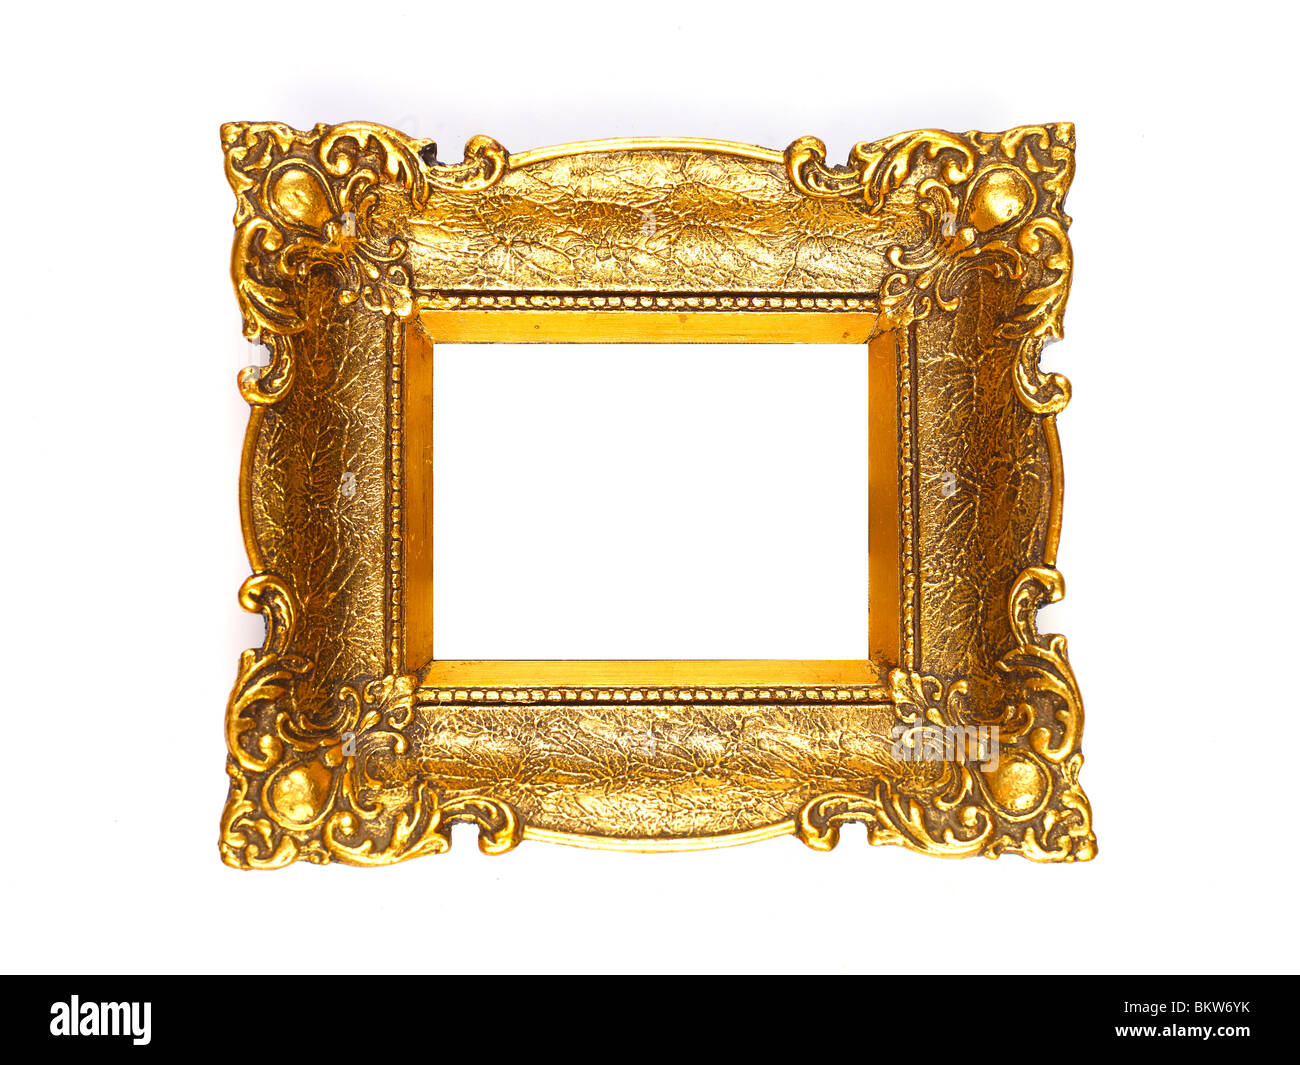 Old gold picture frame isolated on white background design old gold picture frame isolated on white background design element jeuxipadfo Gallery